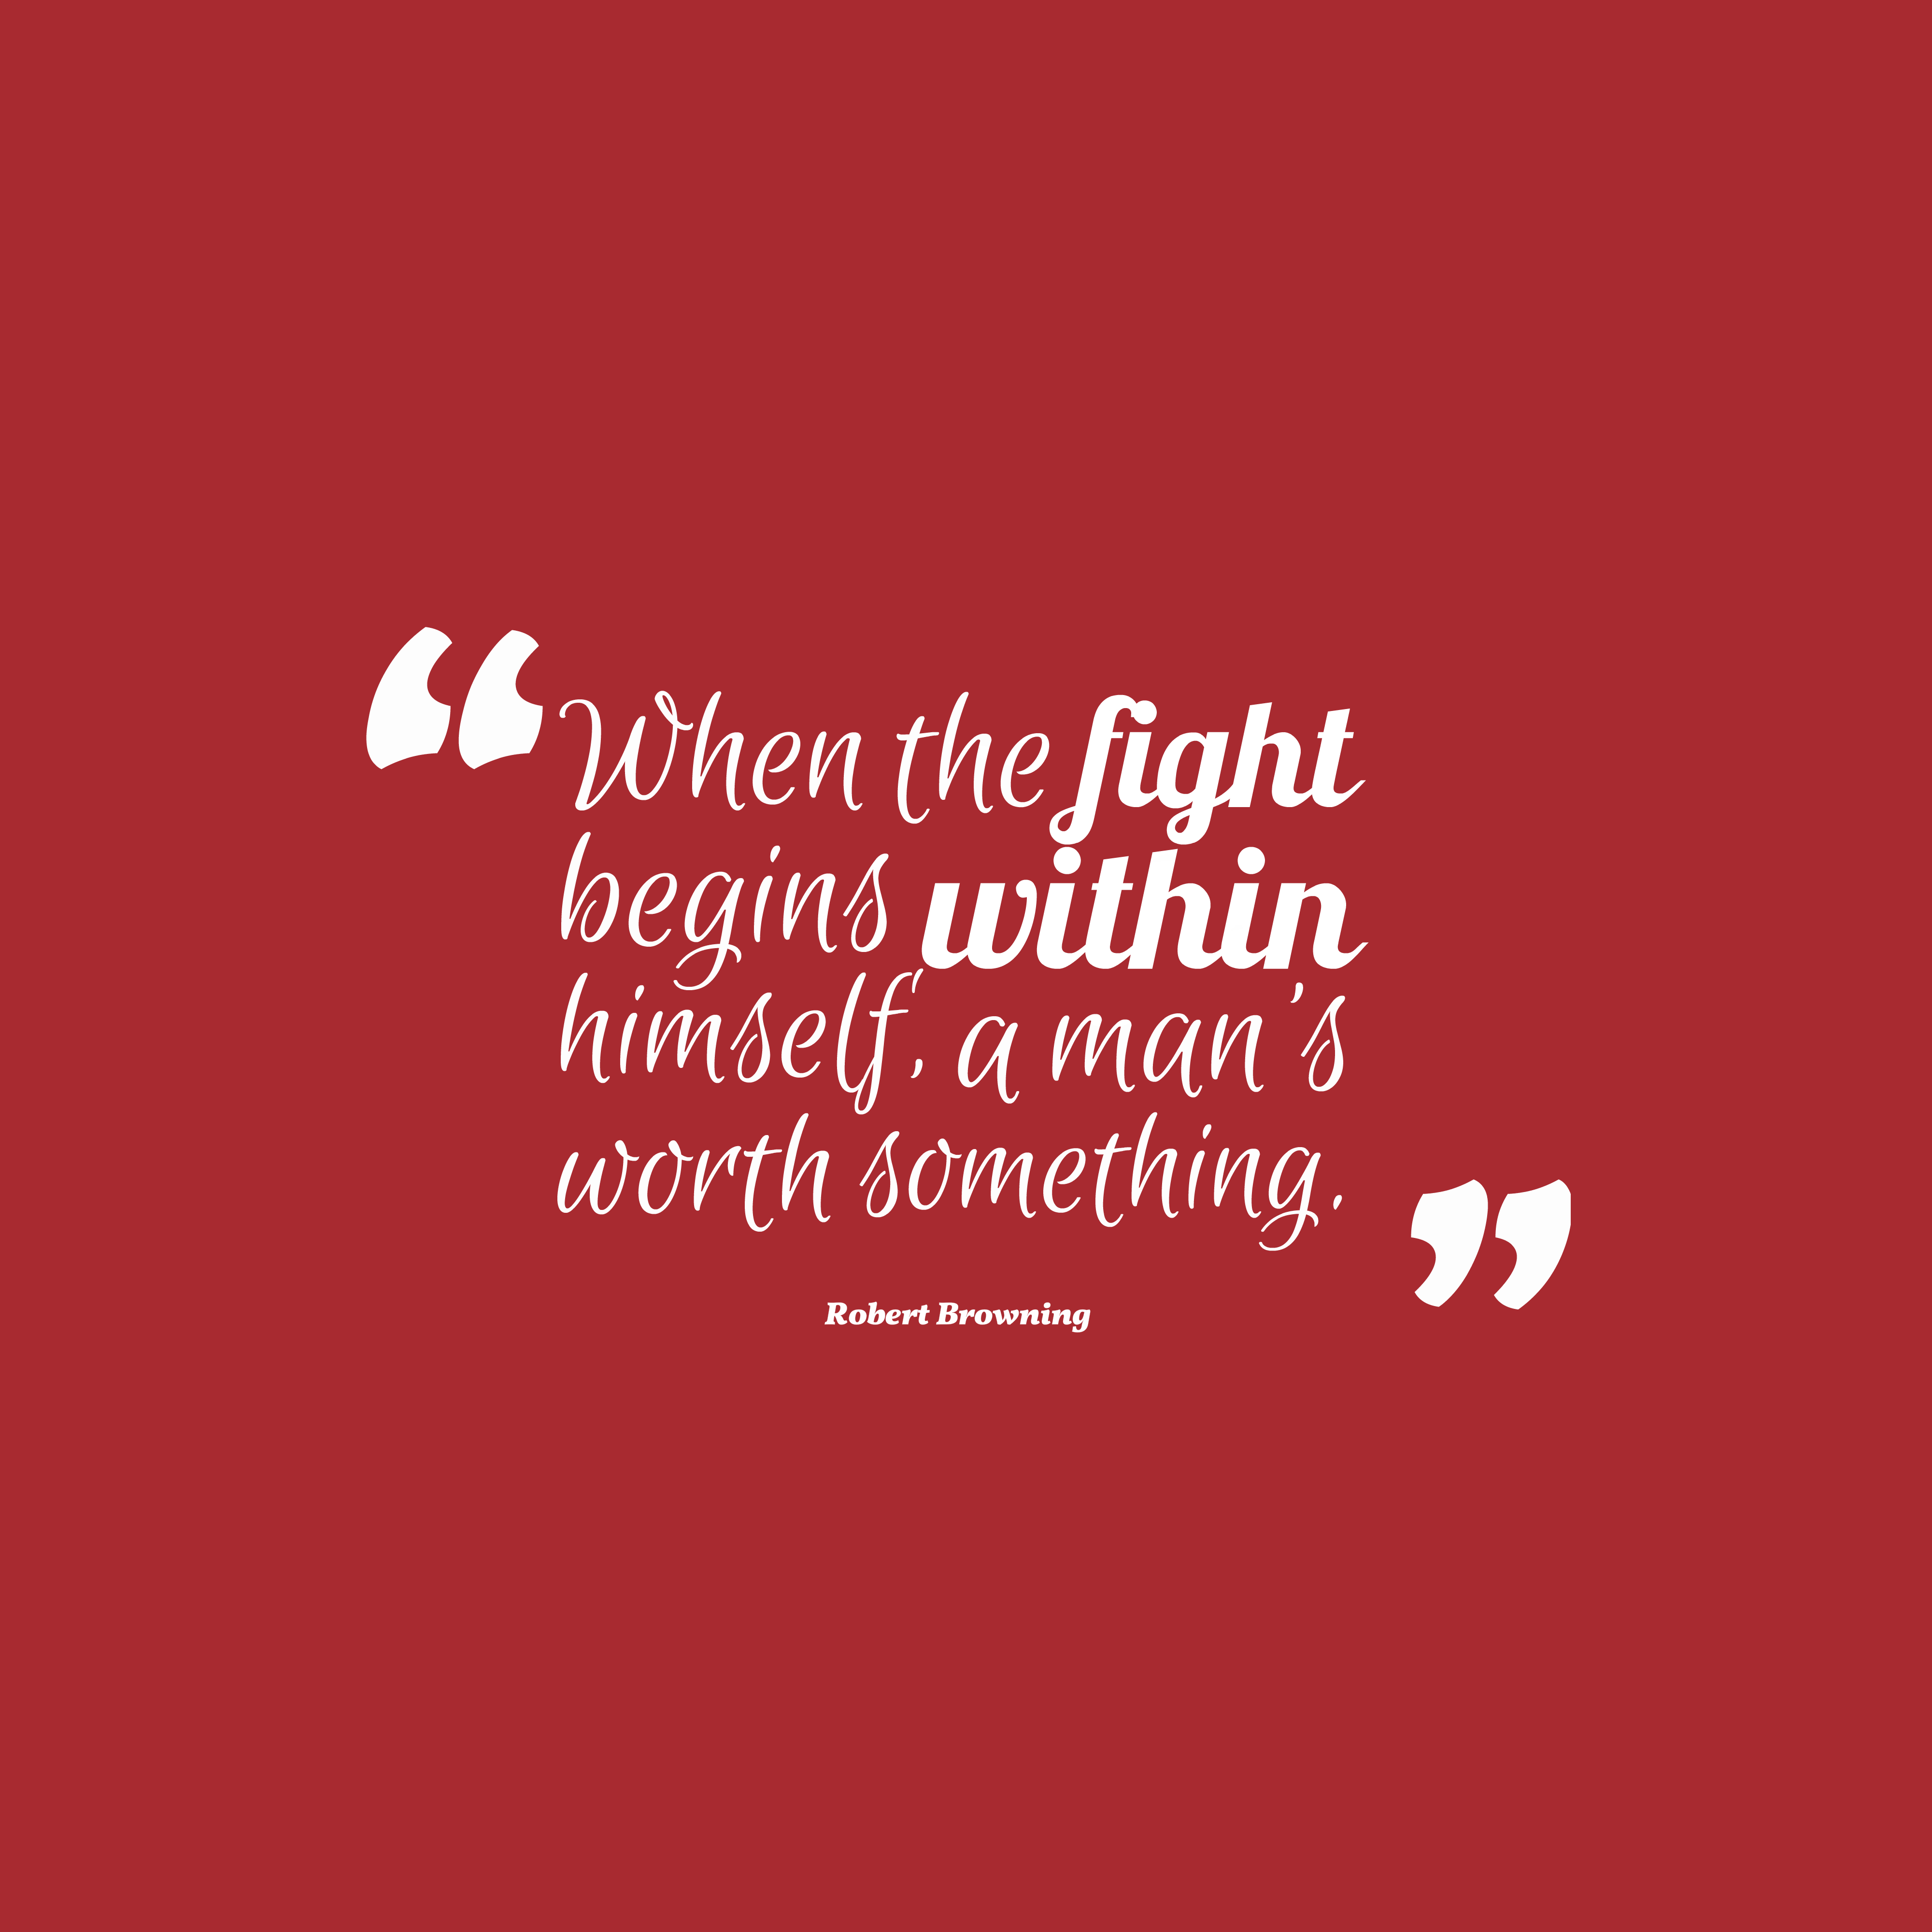 Quotes About Fighting: 89 Best Rita Mae Brown Quotes Images